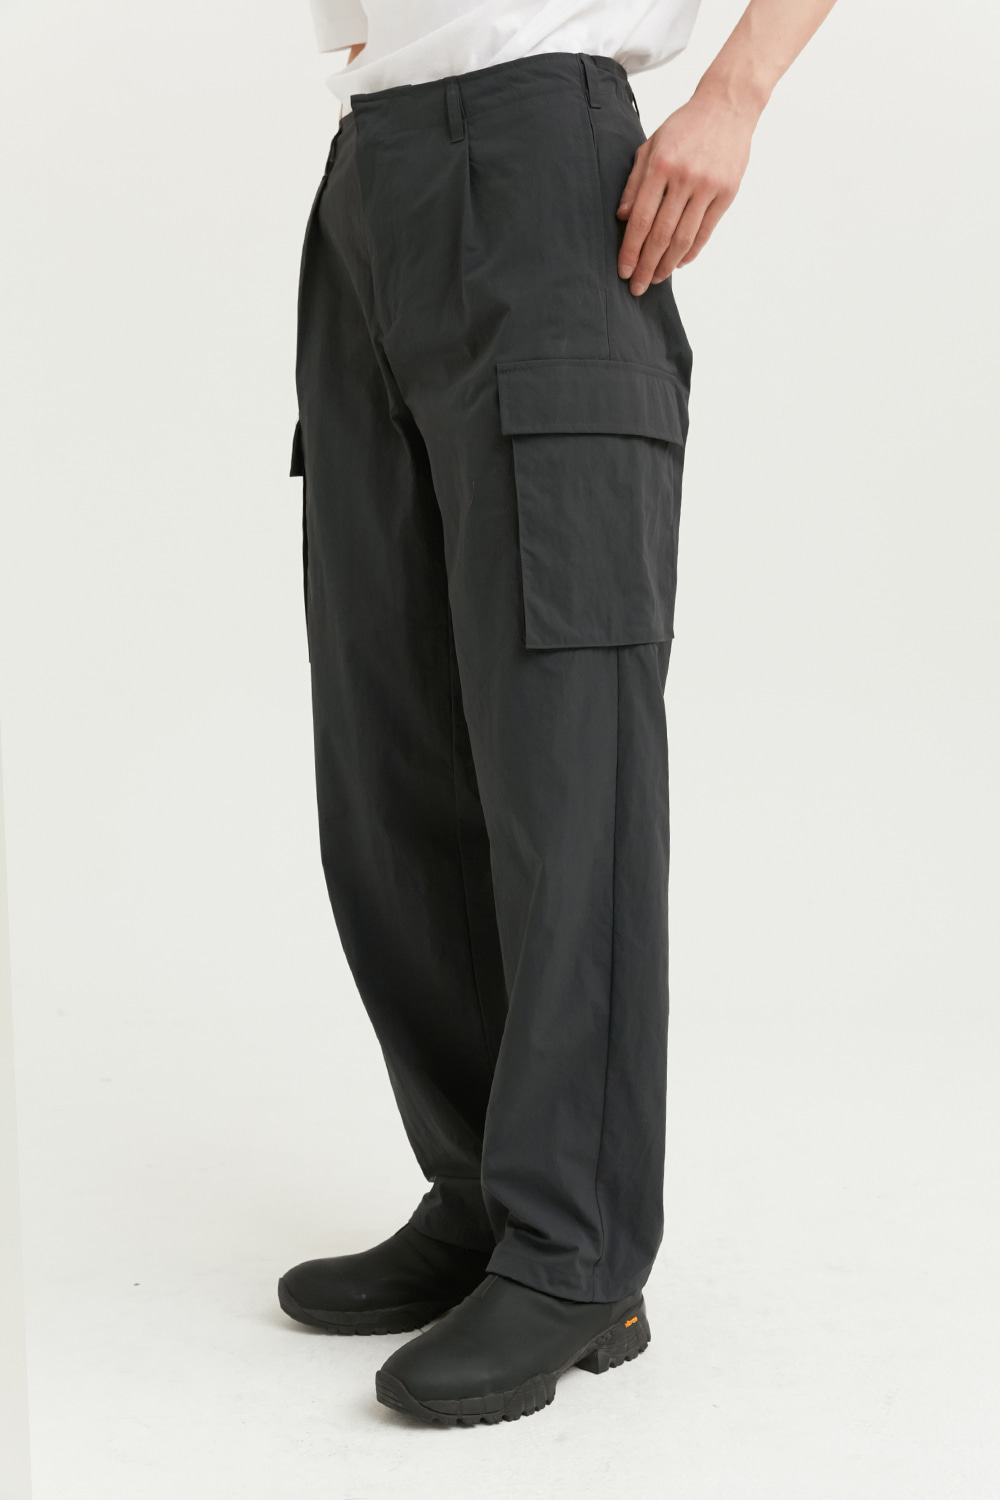 Cargo Pants Men [Charcoal Gray]